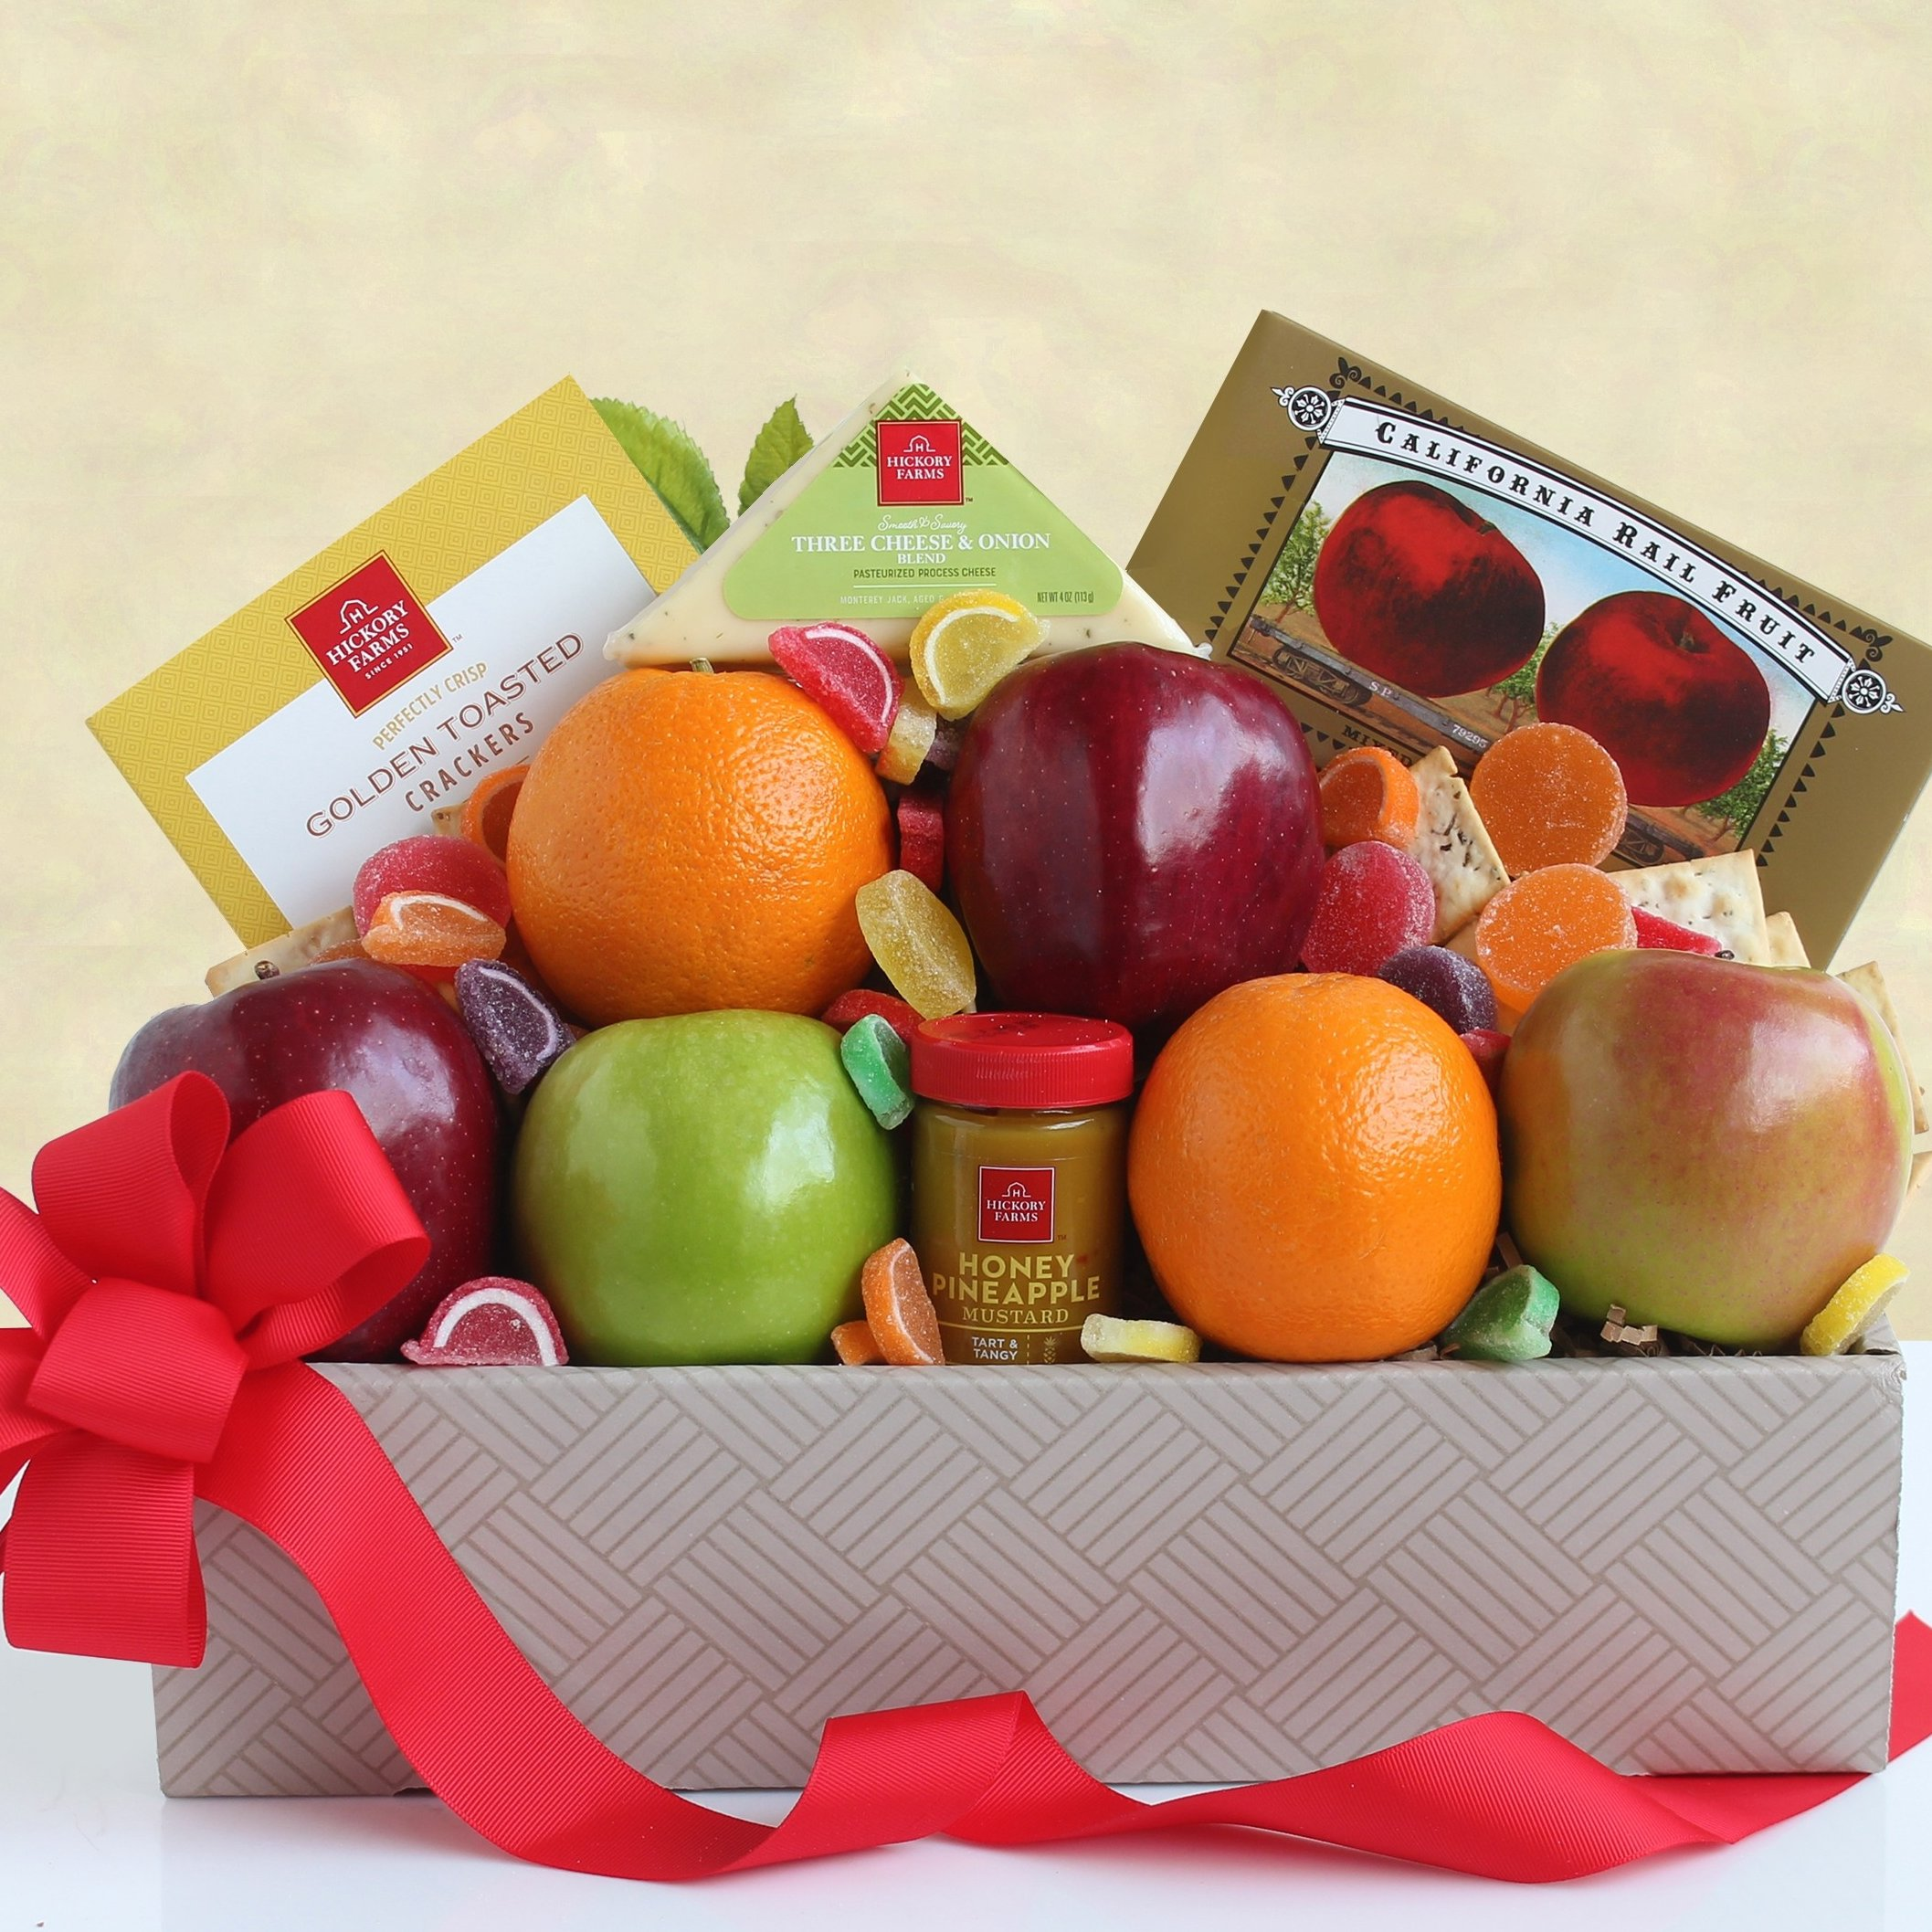 Image 0 of Harvest Goodness: Fruit and Cheese Box